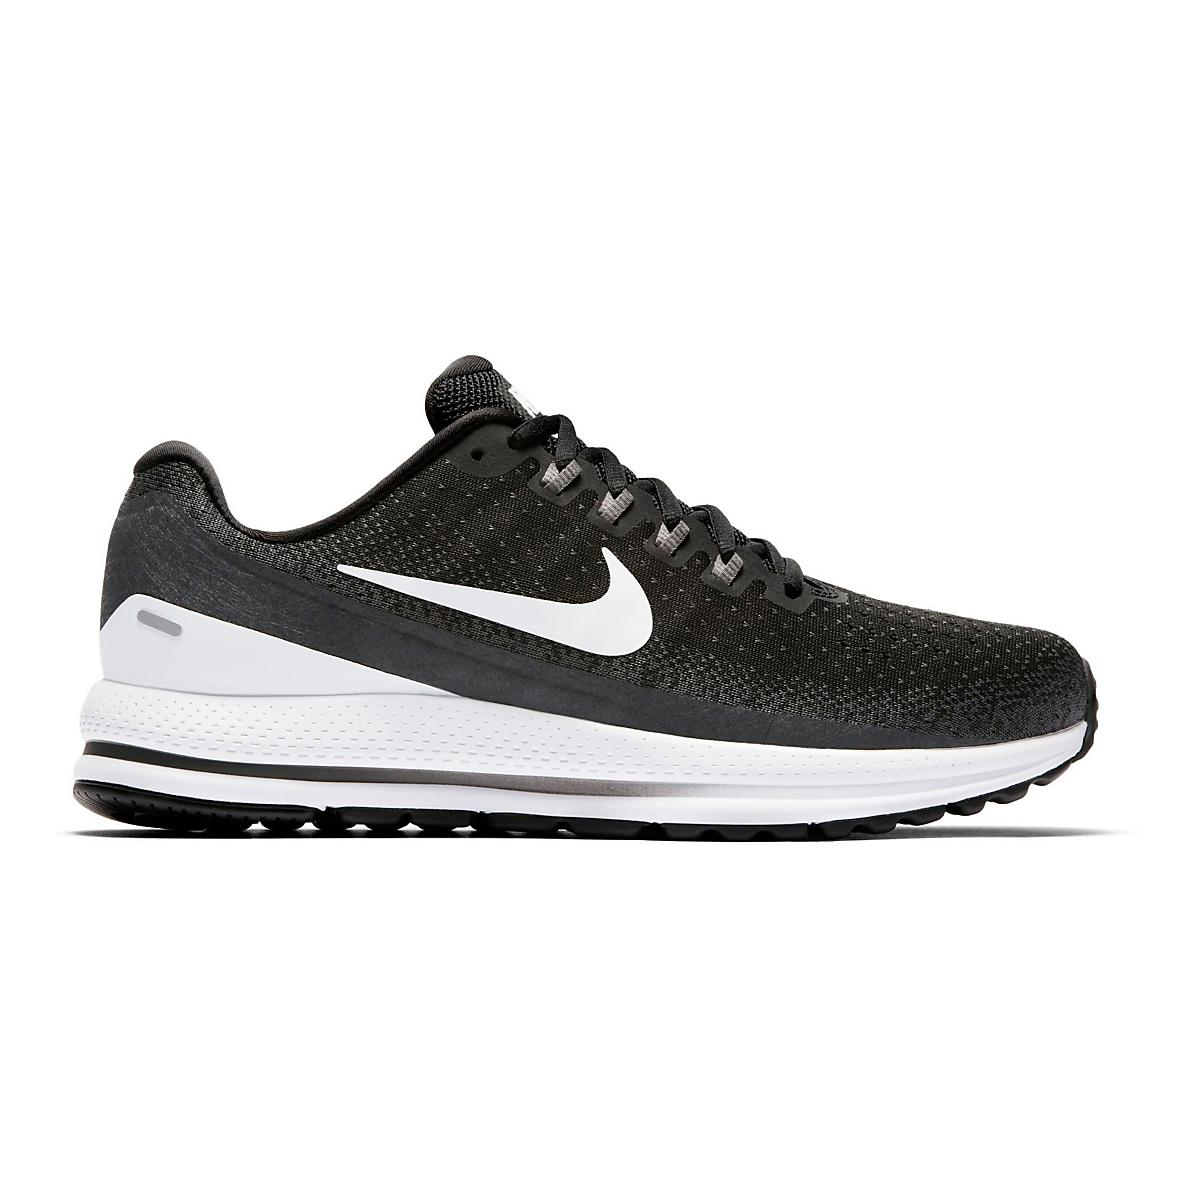 Nike Air Zoom Vomero 13 for Men from Road Runner Sports 5a737e83647